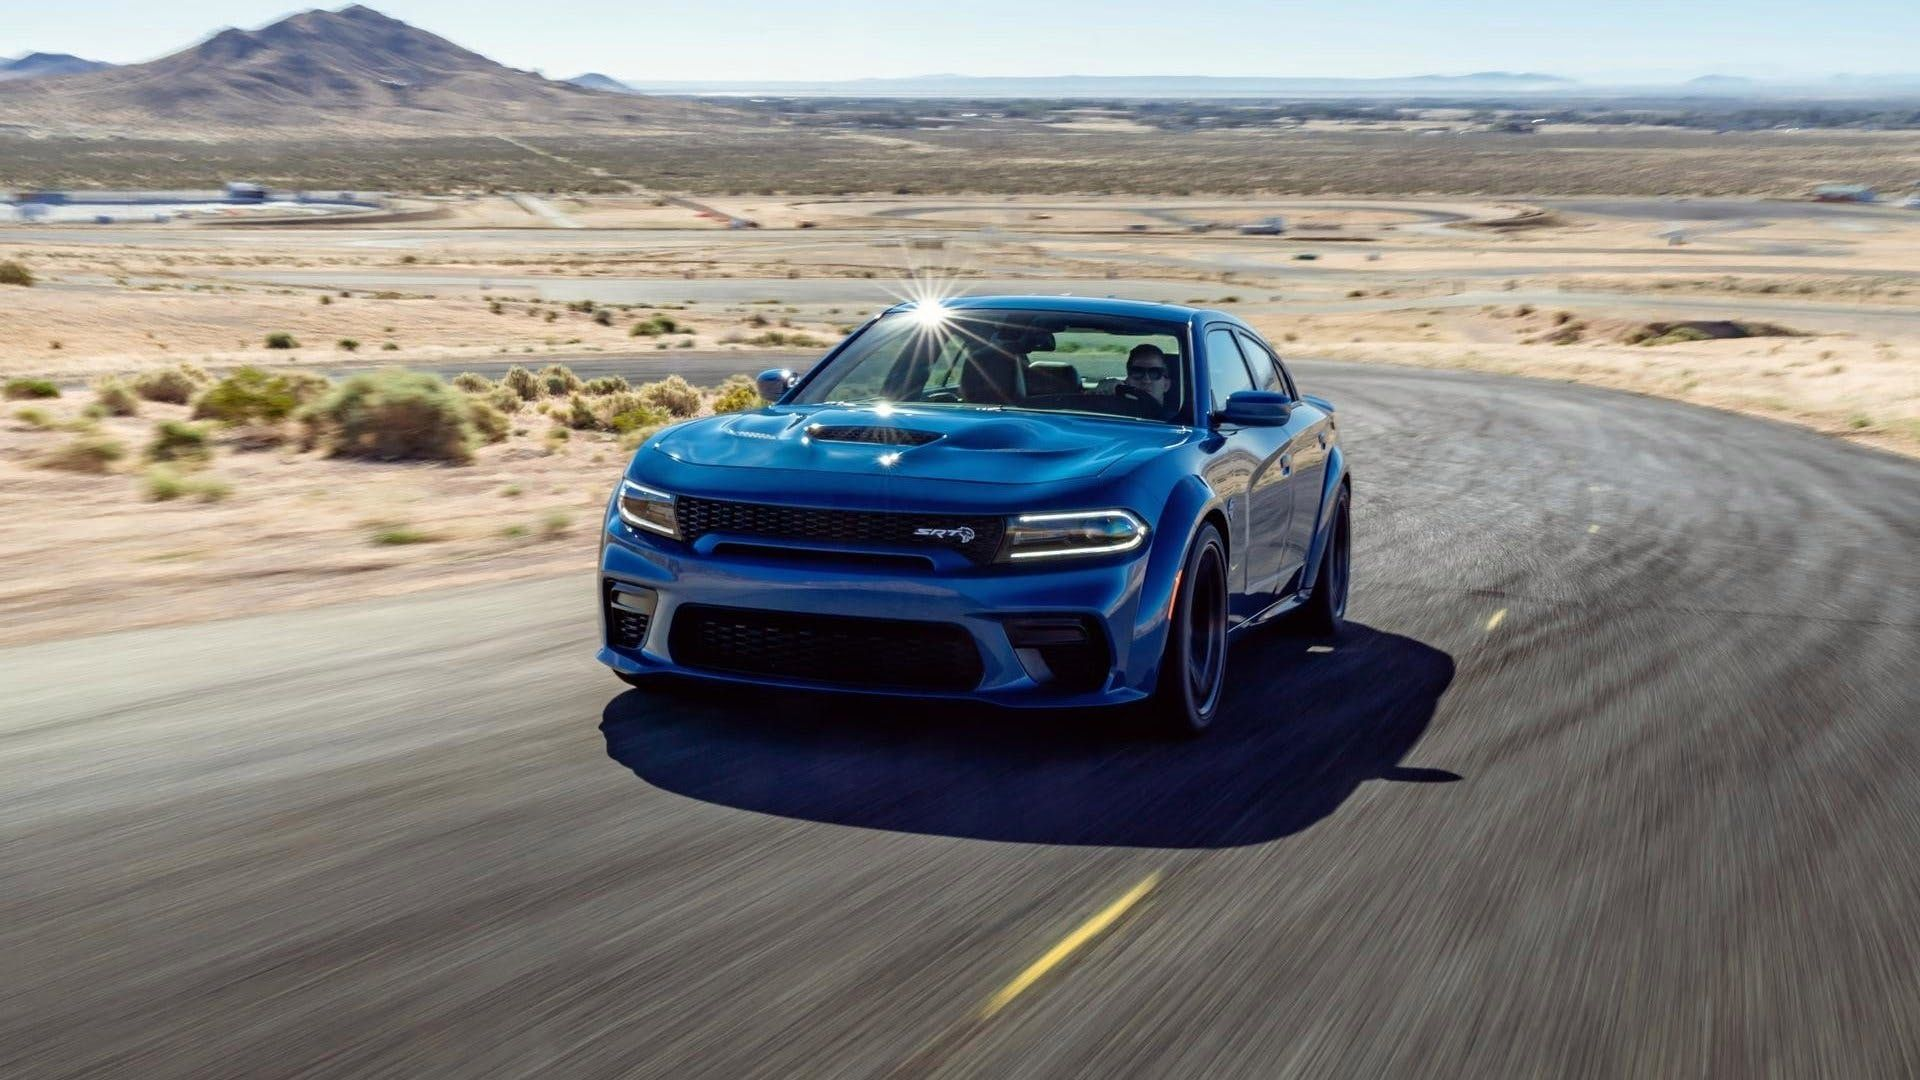 Murica Yeah Raise A Beer To The 707 Horsepower 2020 Dodge Charger Srt Hellcat Widebody The Drive